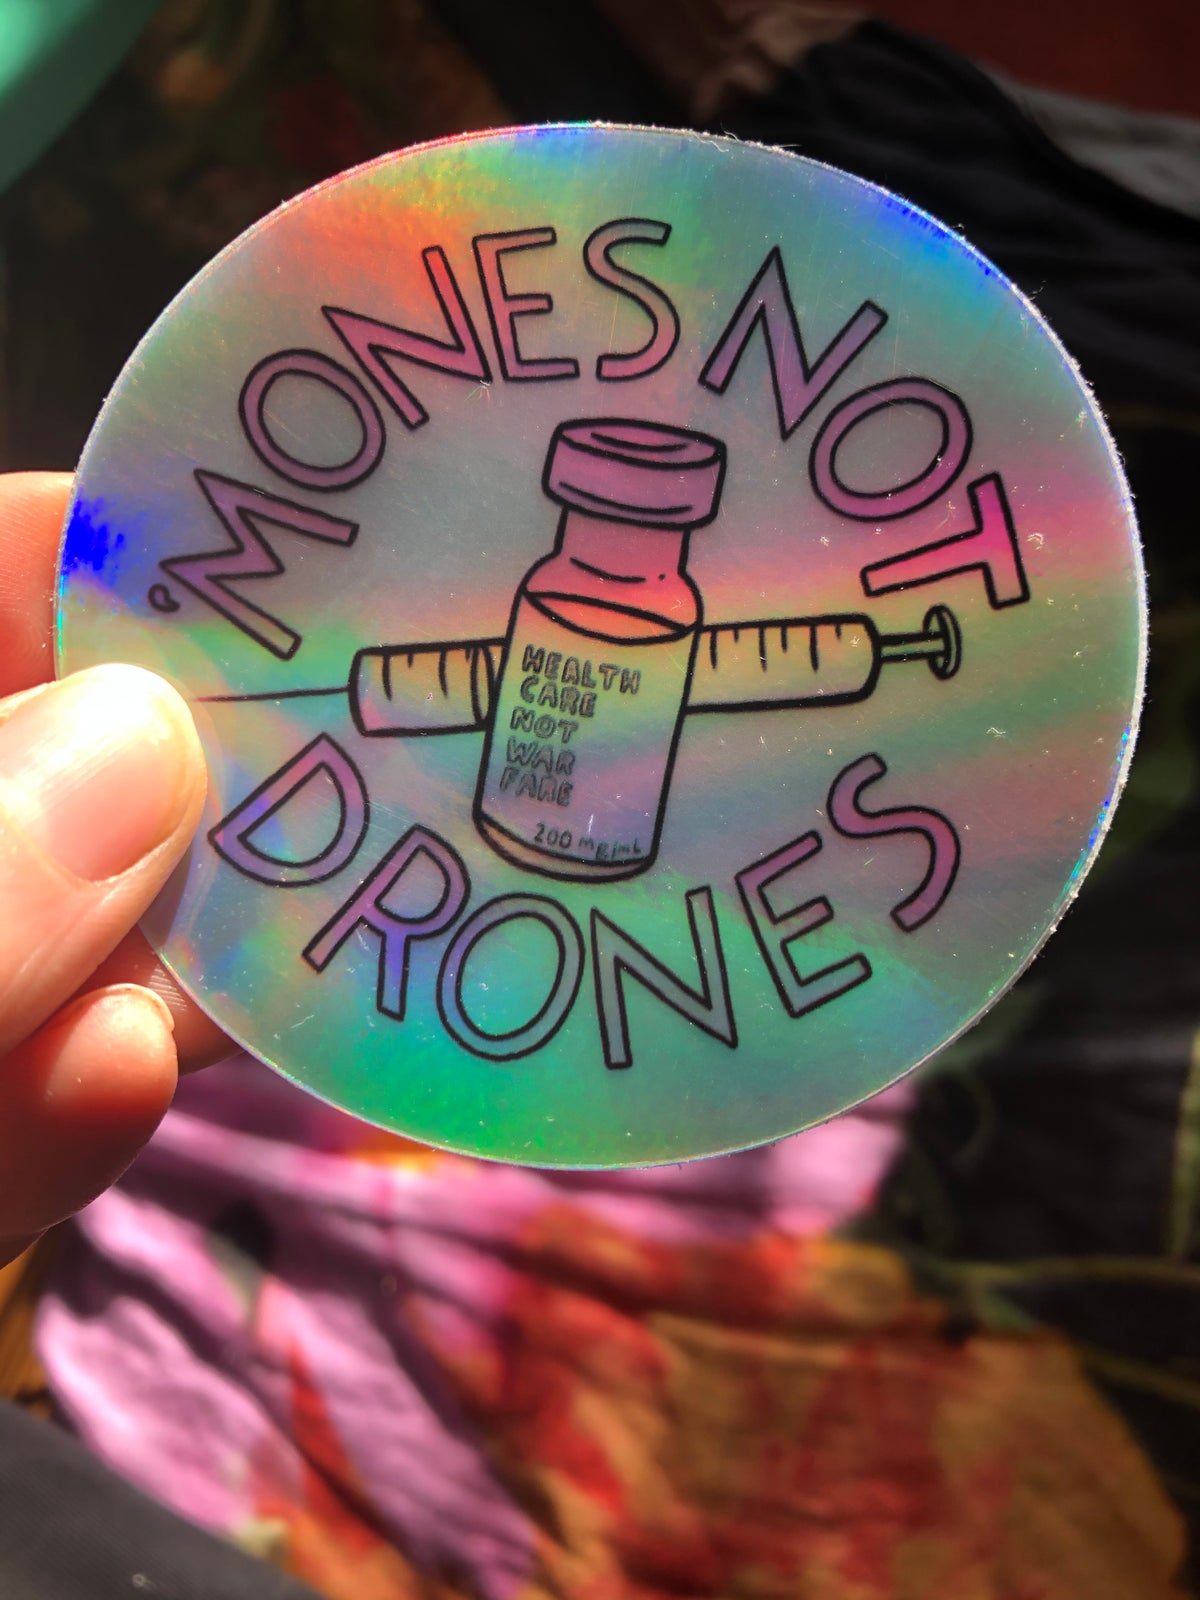 Image of 'Mones Not Drones button or sticker